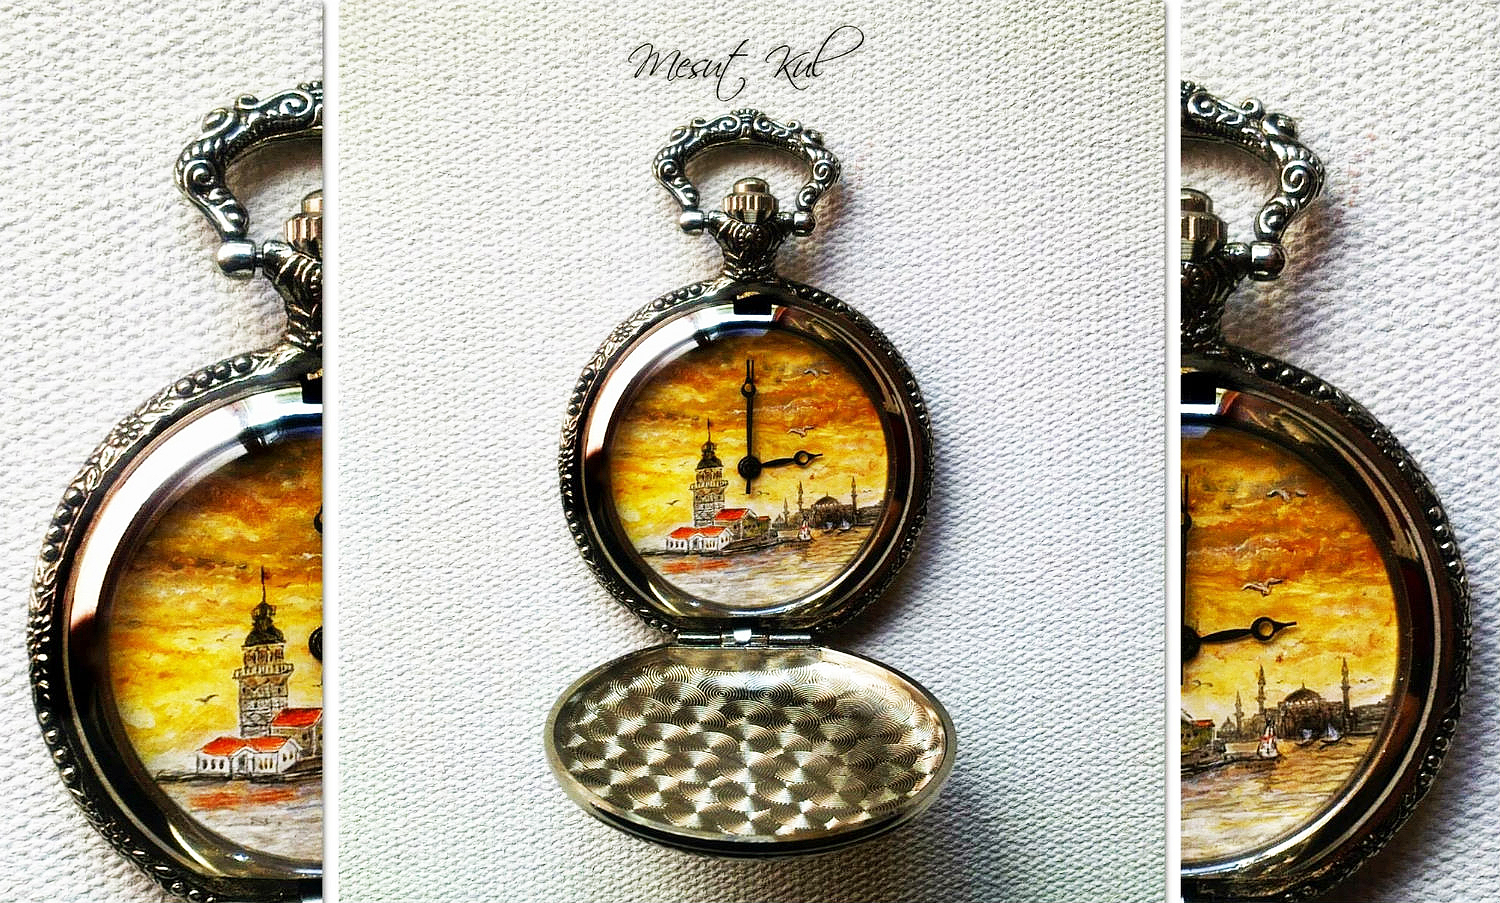 mesut kul painting miniature old fashioned watch